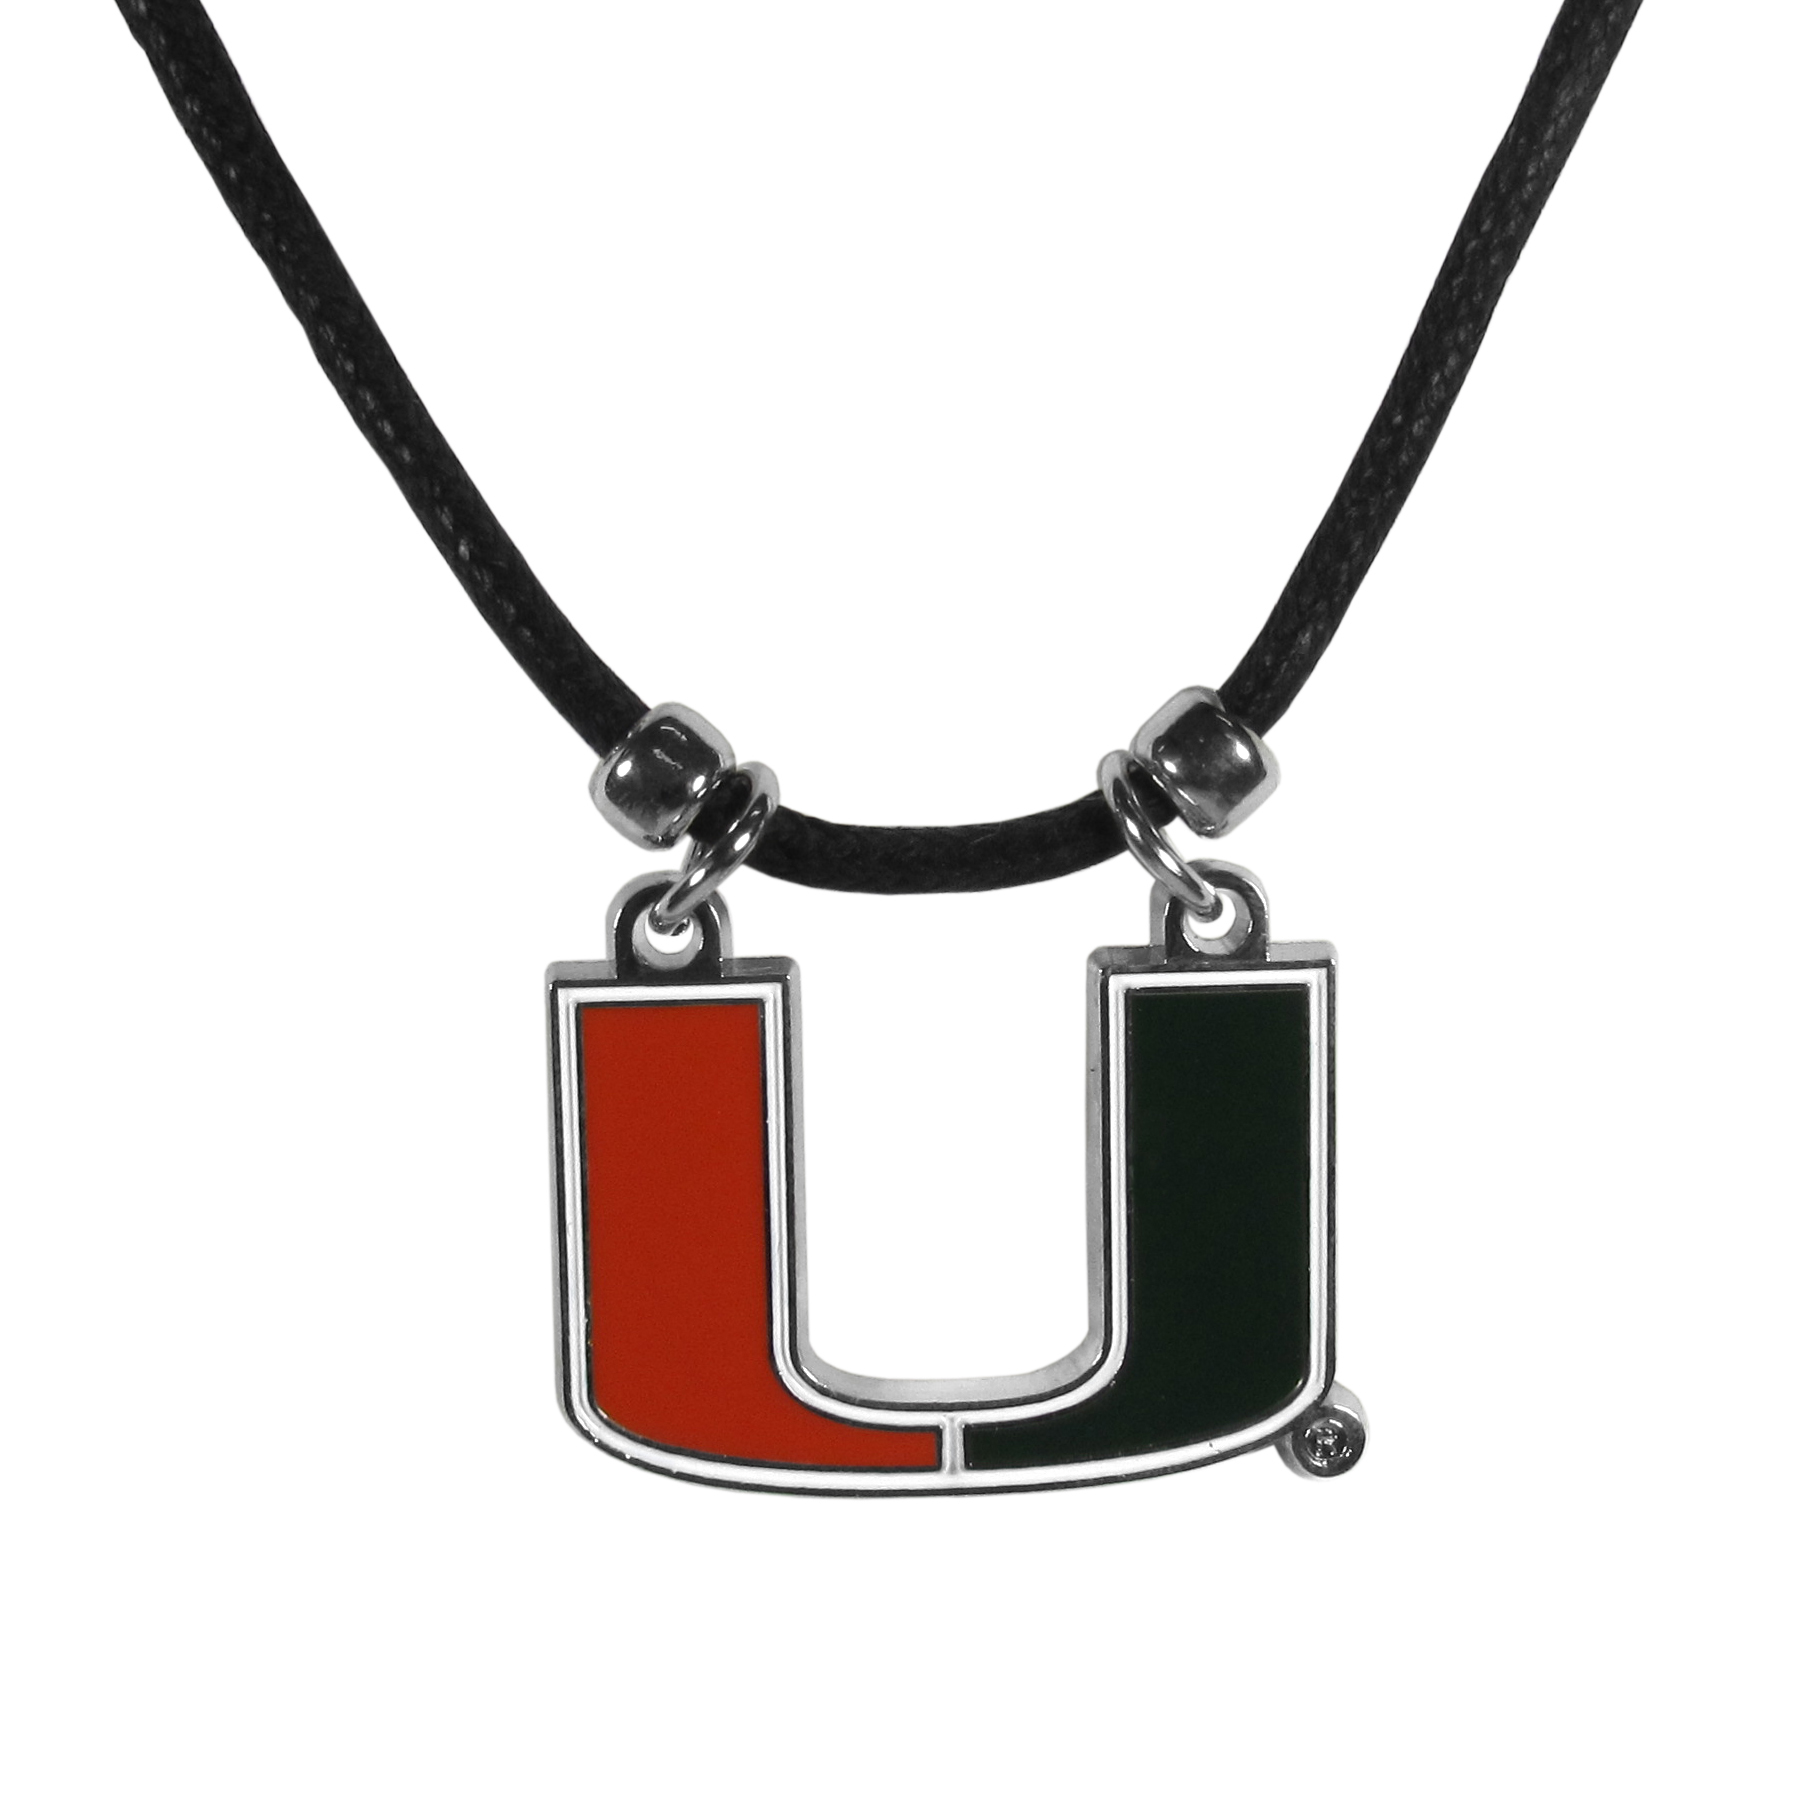 Miami Hurricanes Cord Necklace - This classic style cotton cord necklace features an extra large Miami Hurricanes pendant on a 21 inch cord.